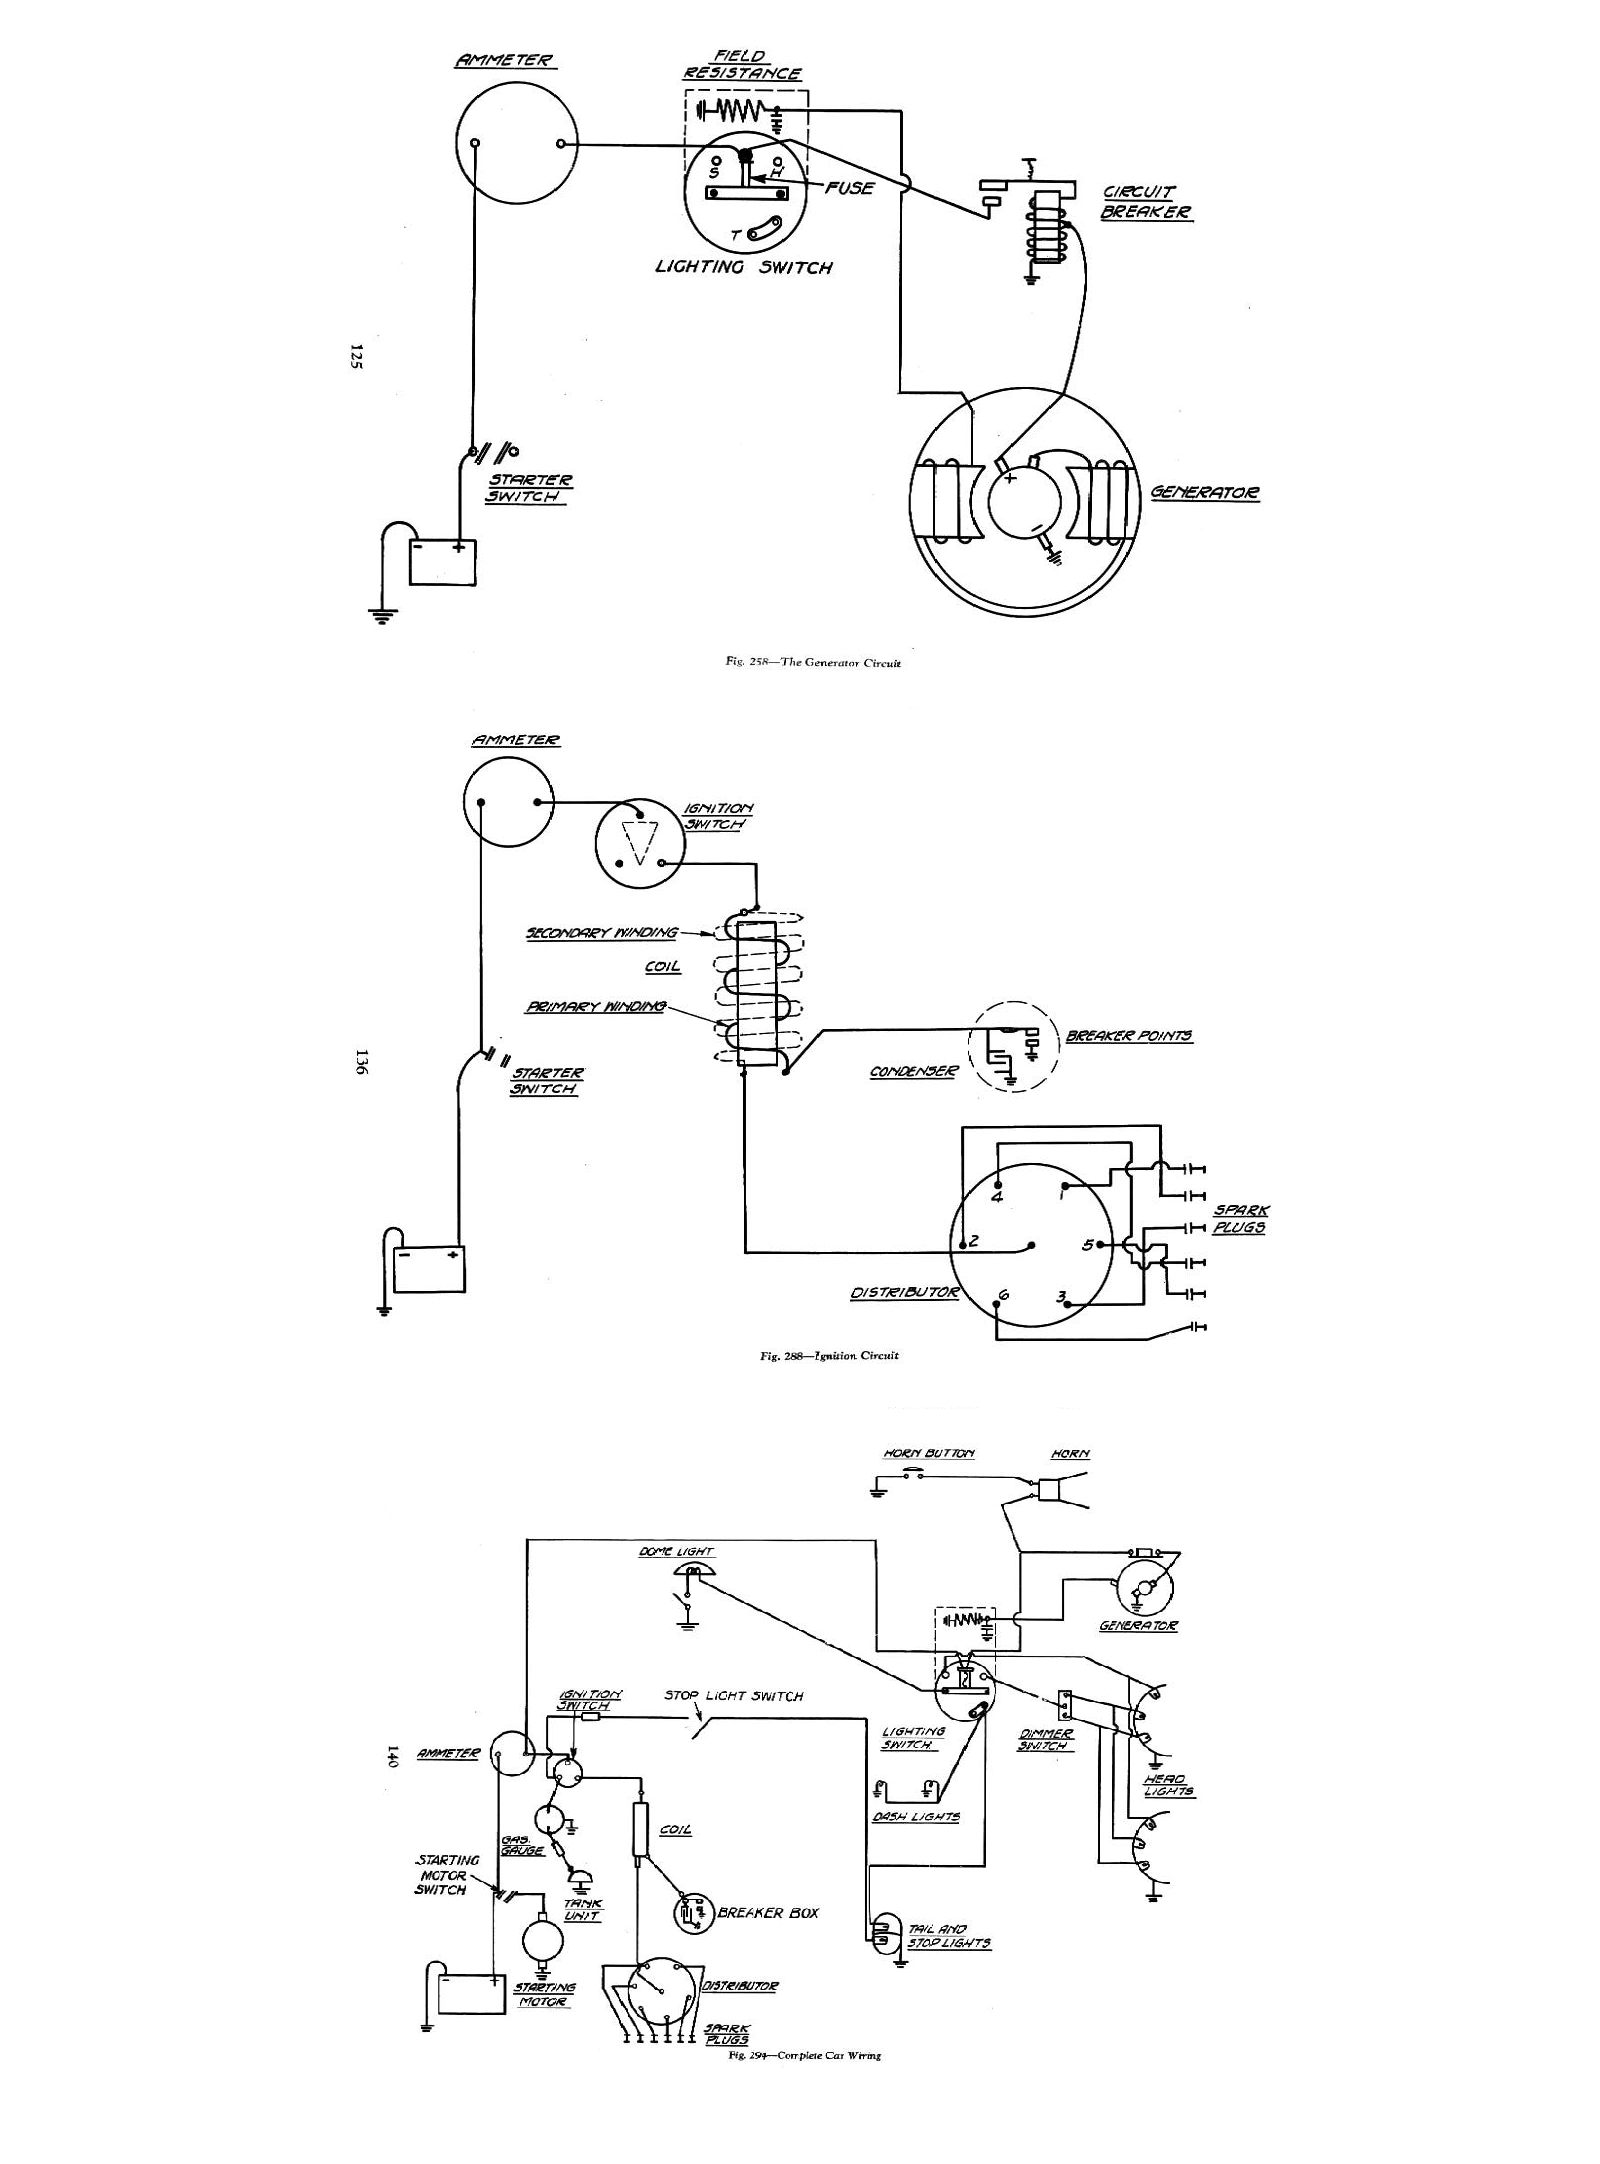 1940 Chevy Truck Wiring Harness Library Chevrolet Diagram